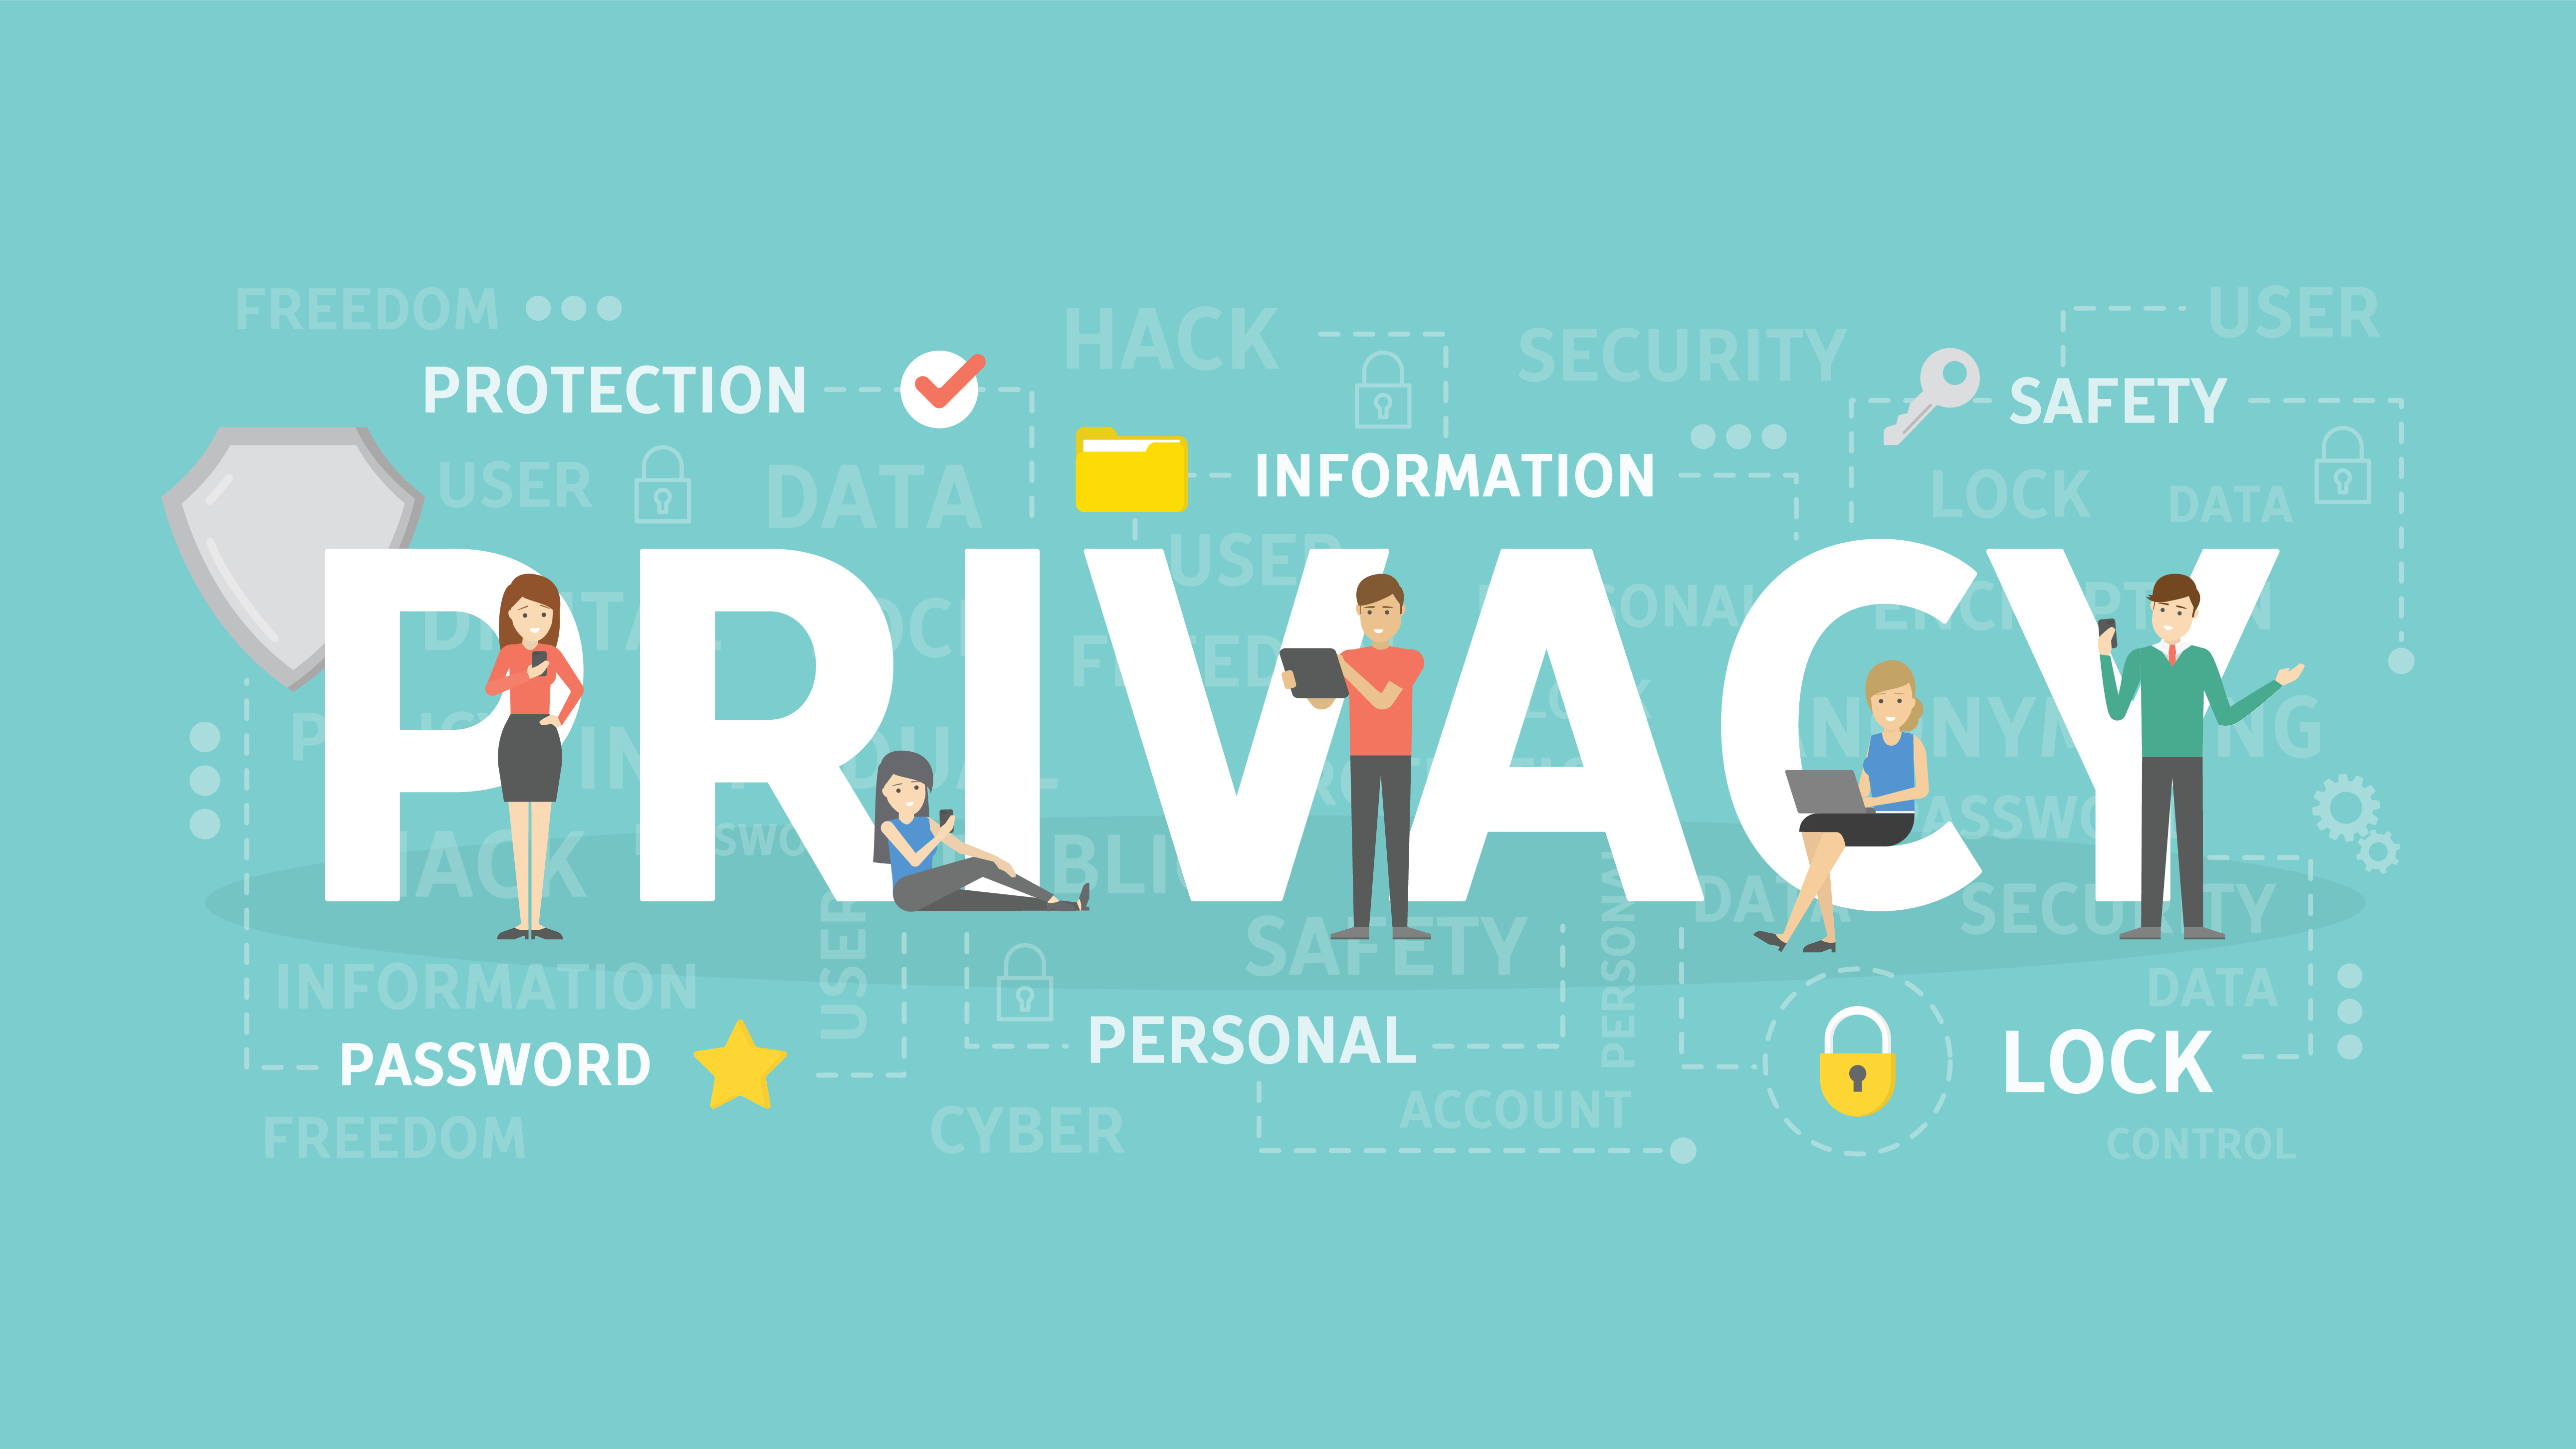 Tech Talk: Internet Safety & Security - Managing Your Risk